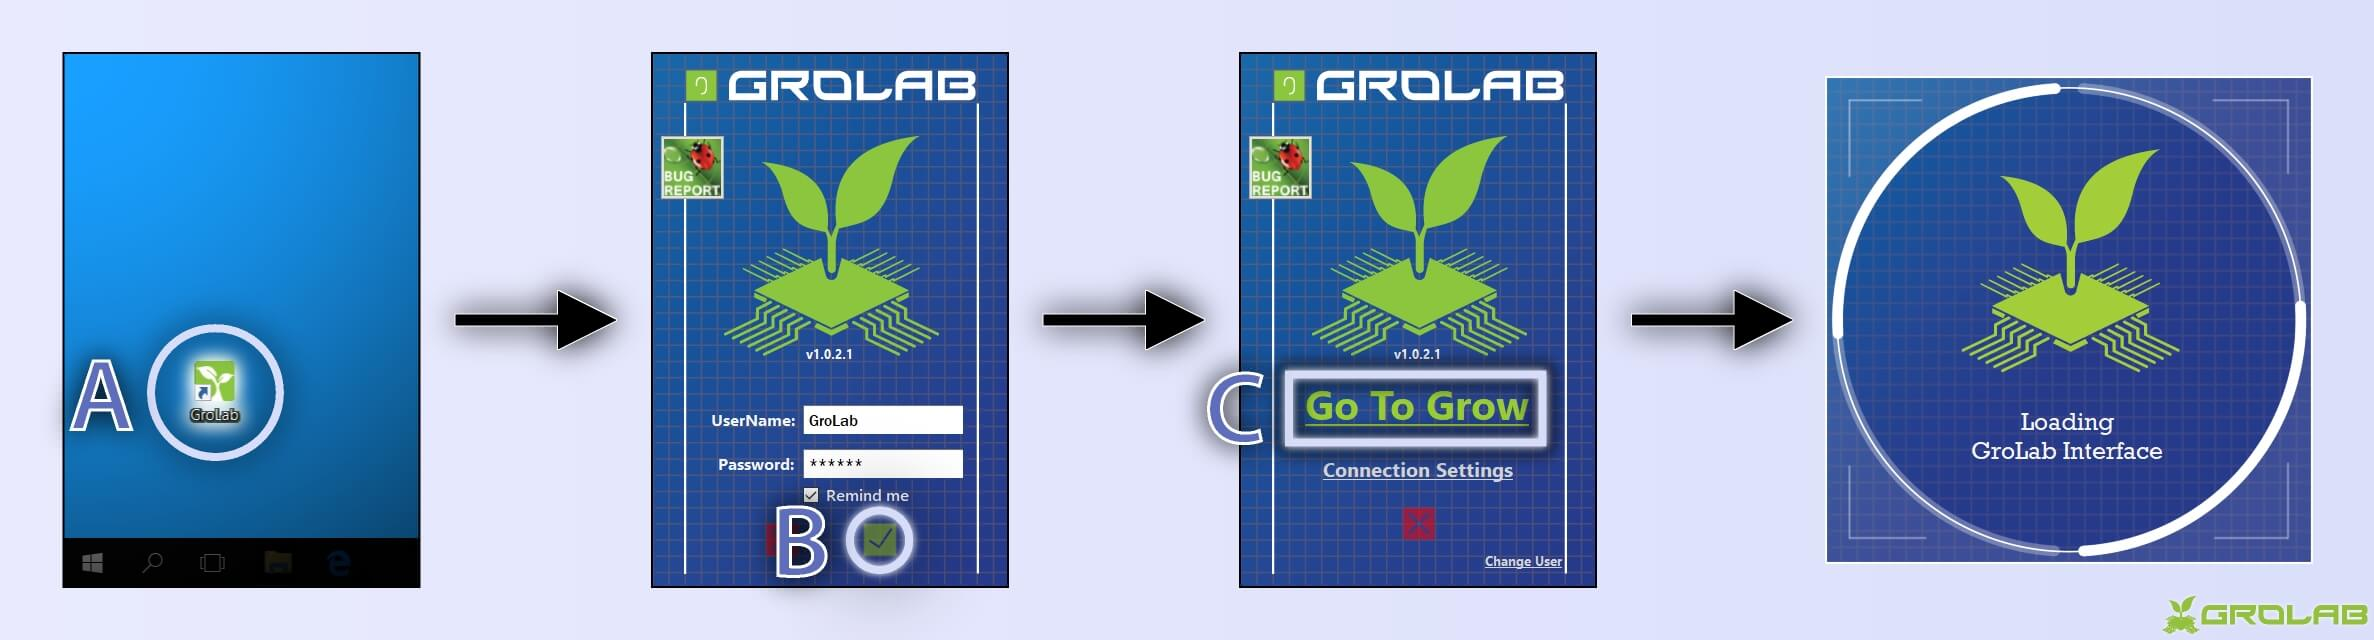 "Instructions to open GroLab™ Software: A-Open GroLab™ Software from desktop shortcut; B-Insert credentials and click to proceed; C-Click on ""Go To Grow"" button; Wait loading operation."